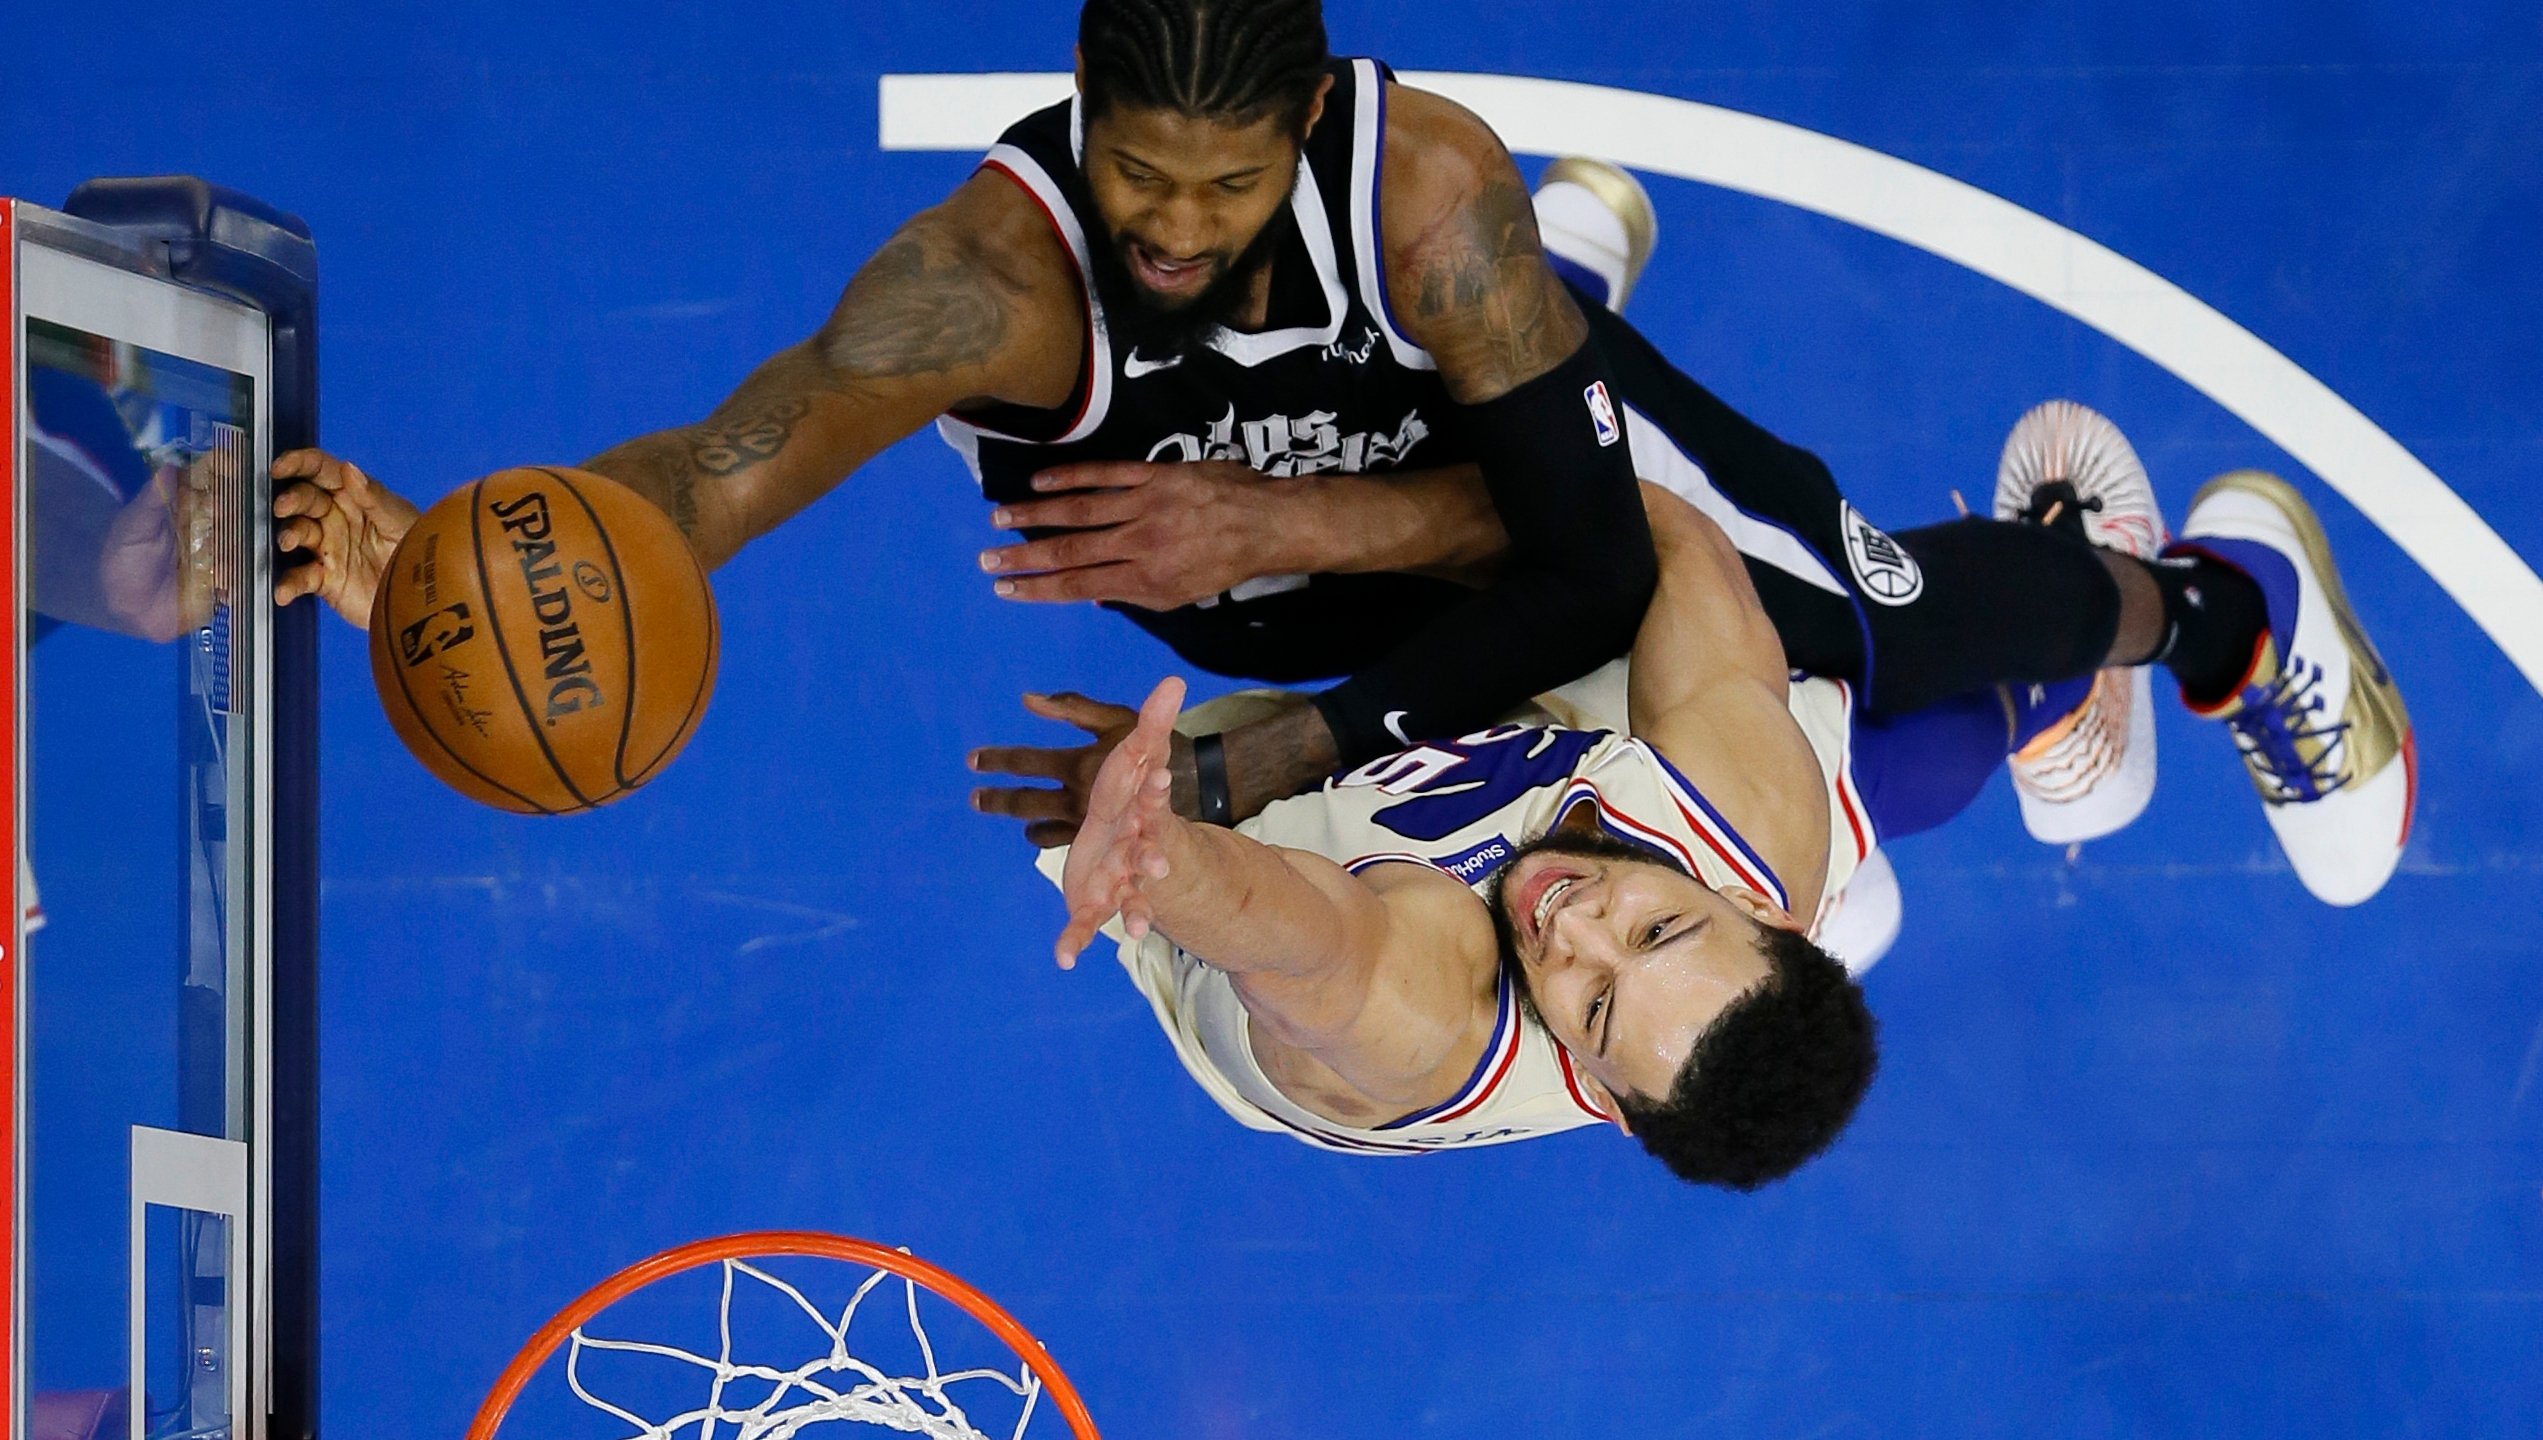 Los Angeles Clippers' Paul George, top, goes up for a shot against Philadelphia 76ers' Ben Simmons during the second half of an NBA basketball game in Philadelphia April 16, 2021. (Matt Slocum / Associated Press)